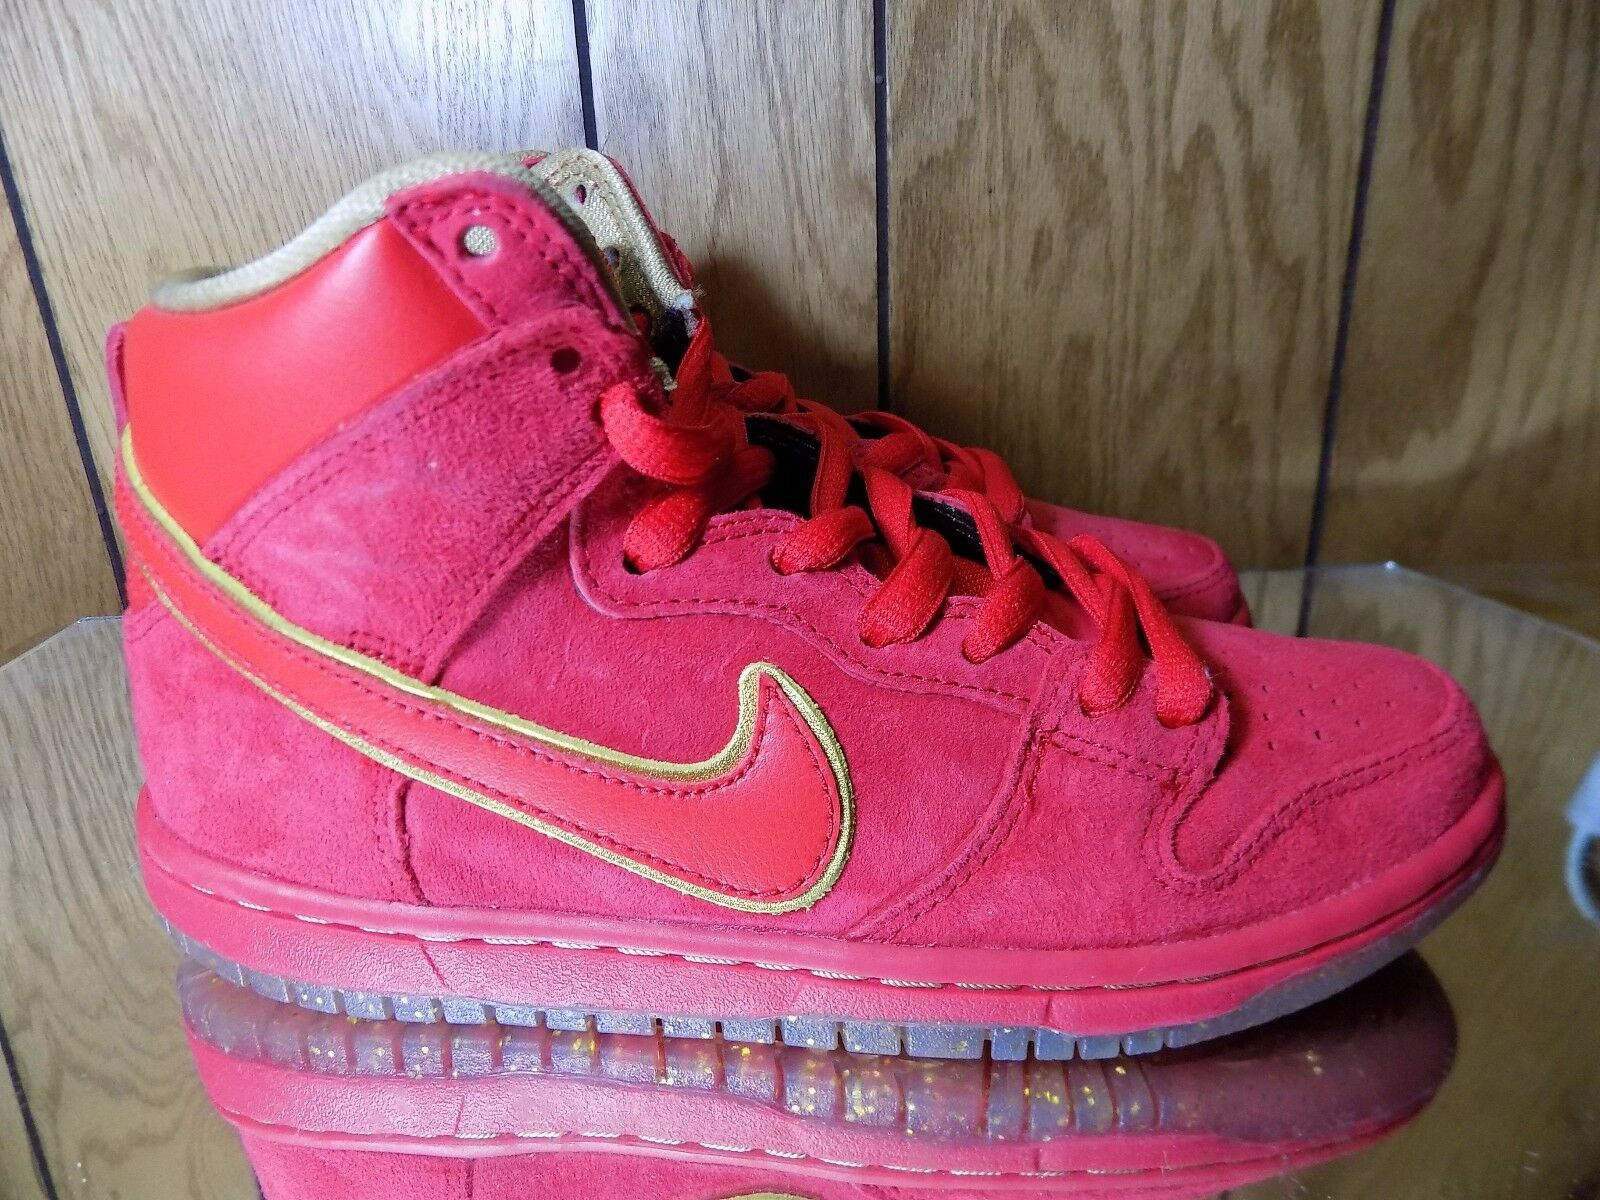 new products aaca1 ff3b2 Nike Dunk High Premium Premium Premium SB CHINESE NEW YEAR CNY YEAR OF THE  HORSE YOTH